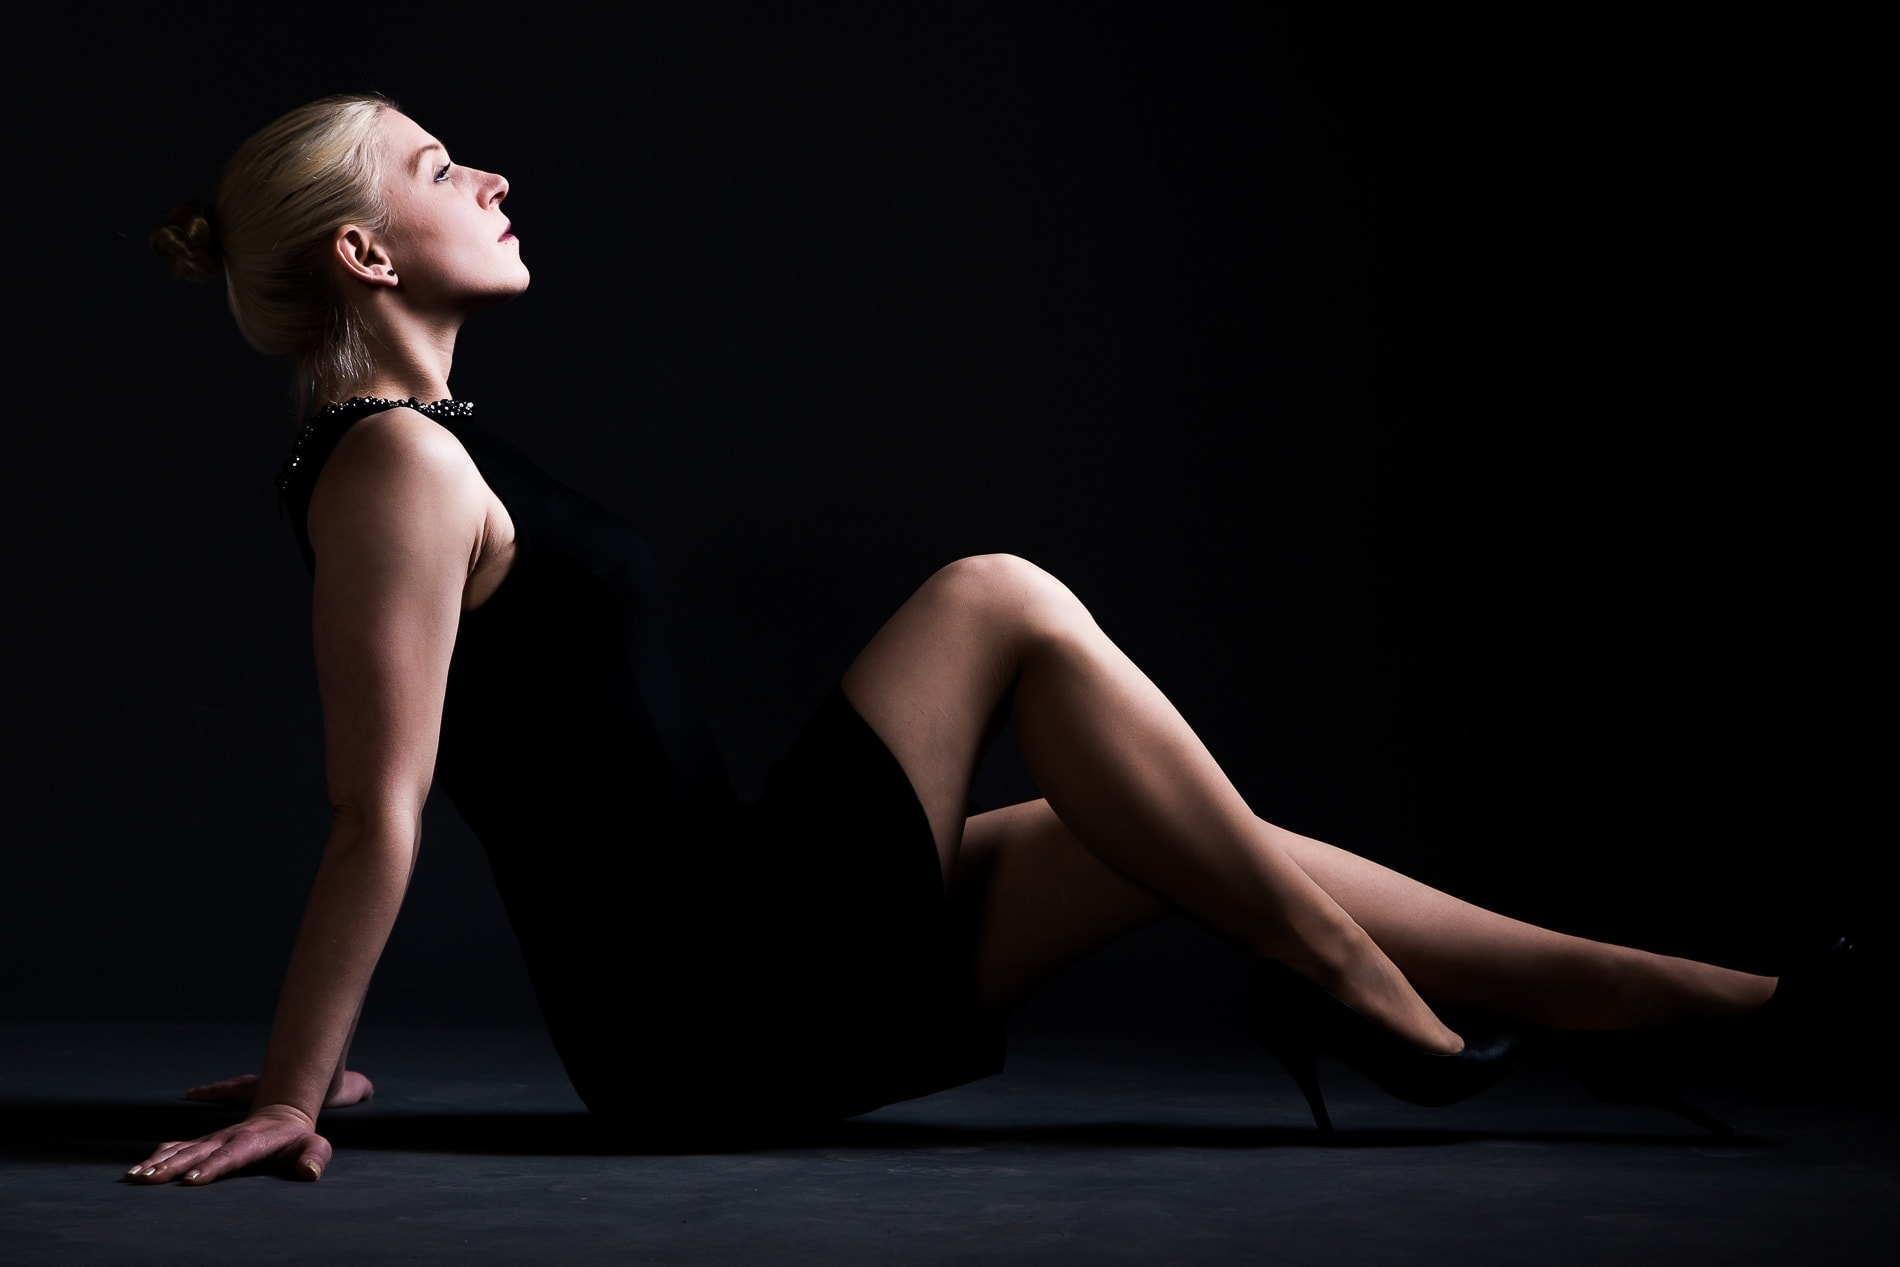 blonde beauty with high heels and directional light sitting on the floor in a reclining position